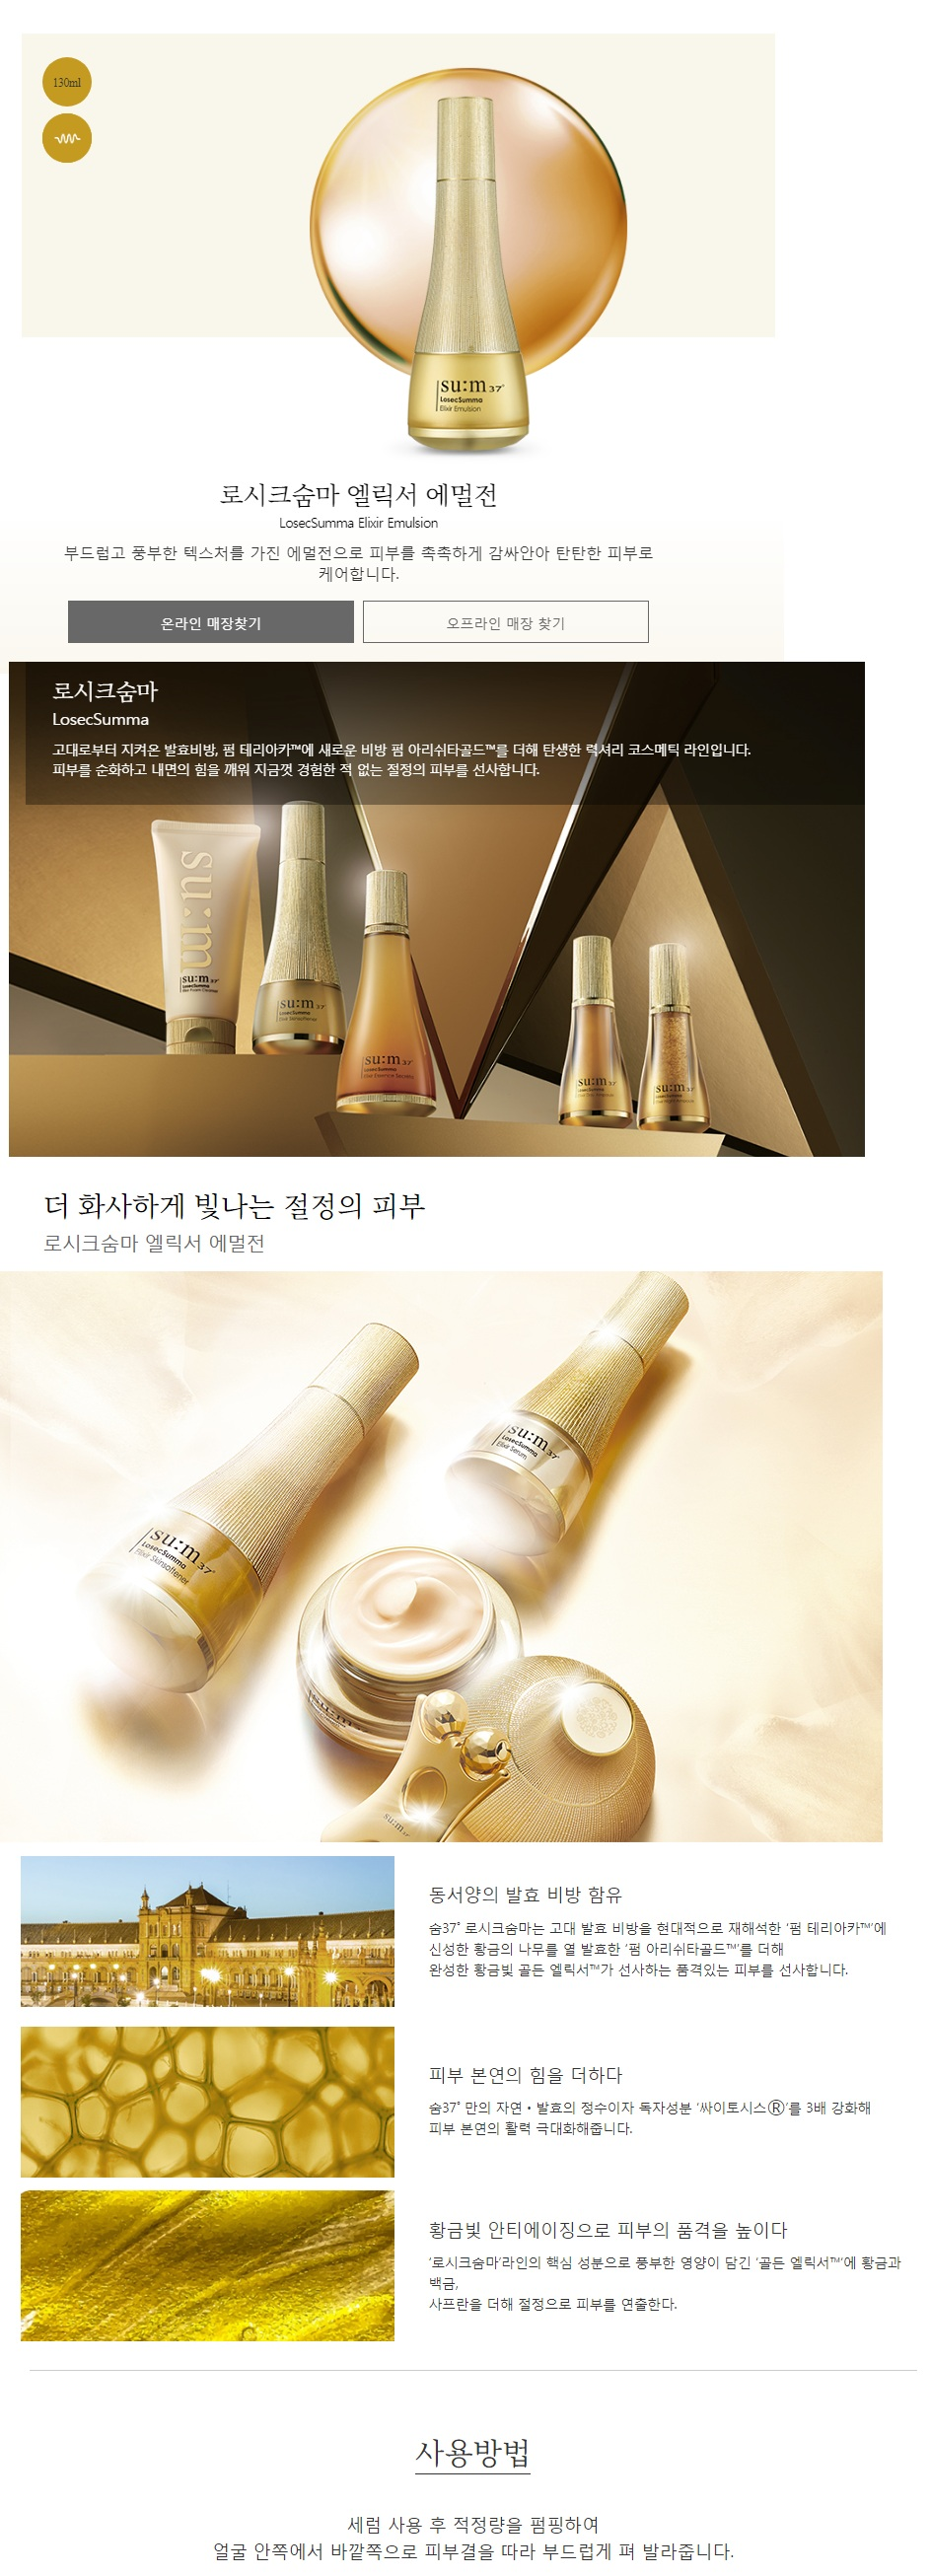 SUM37 Losec Summa Elixir Emulsion korean skincare product online shop malaysia China japan1